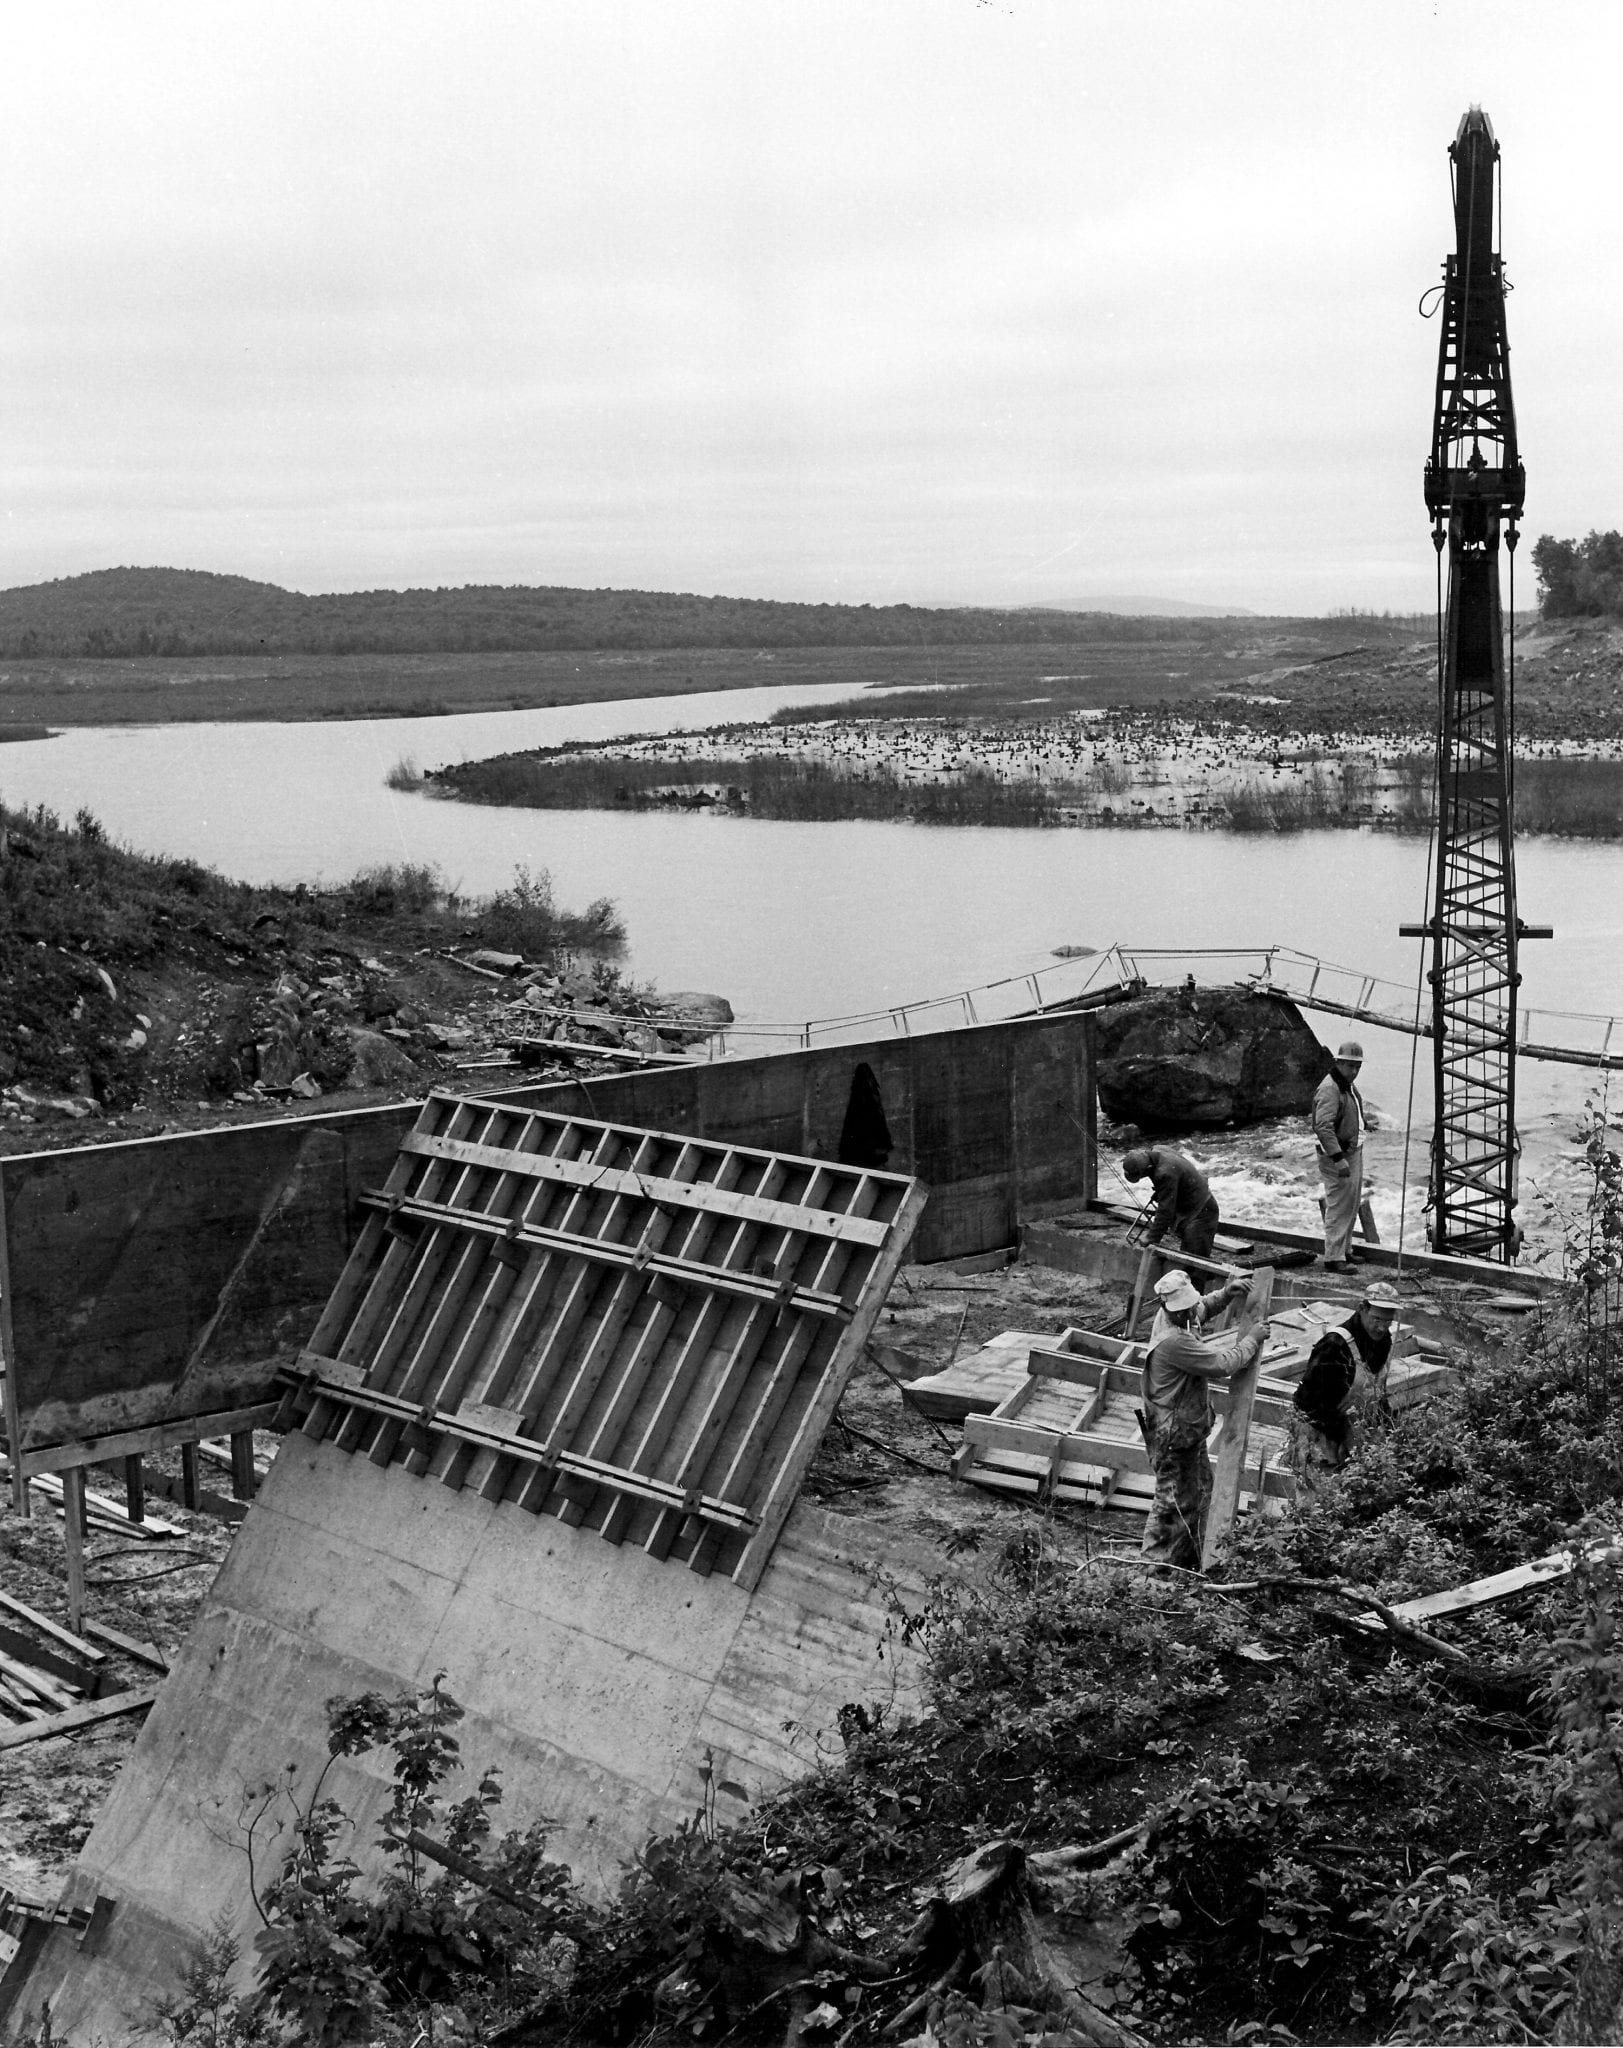 The view upriver from Carry Dam during construction, c. 1950s